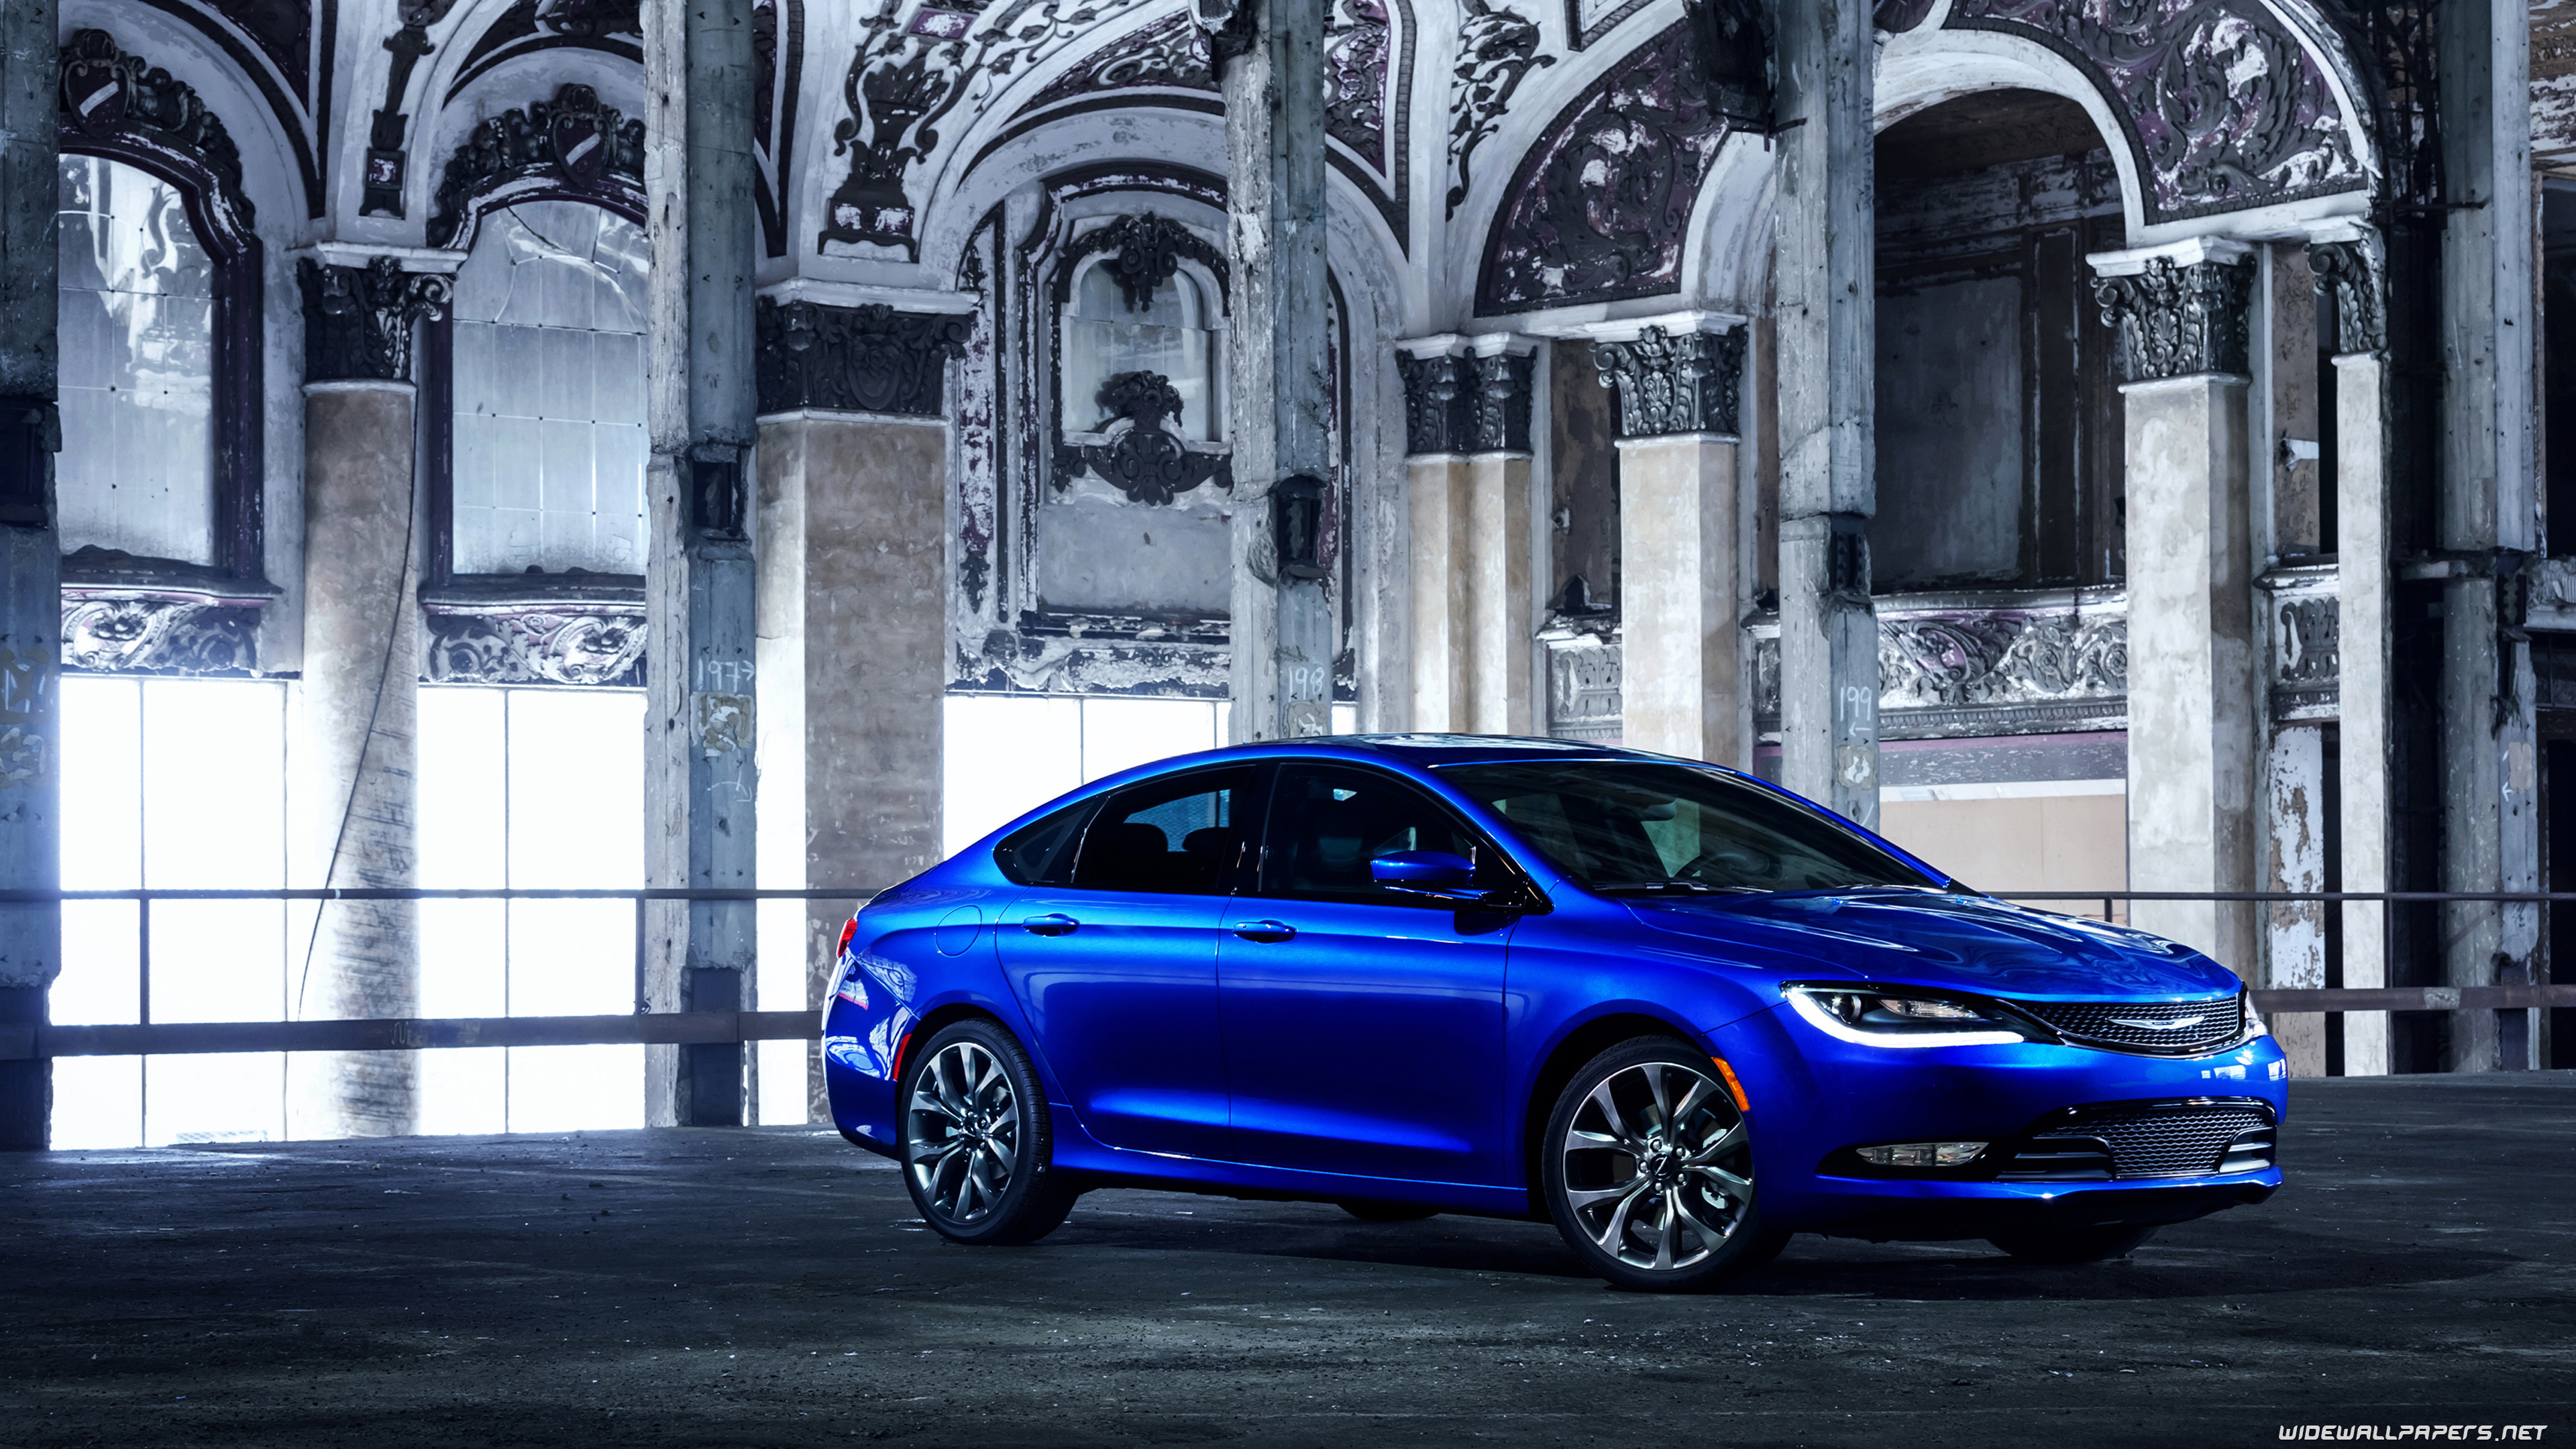 3840x2160 - Chrysler 200 Wallpapers 22